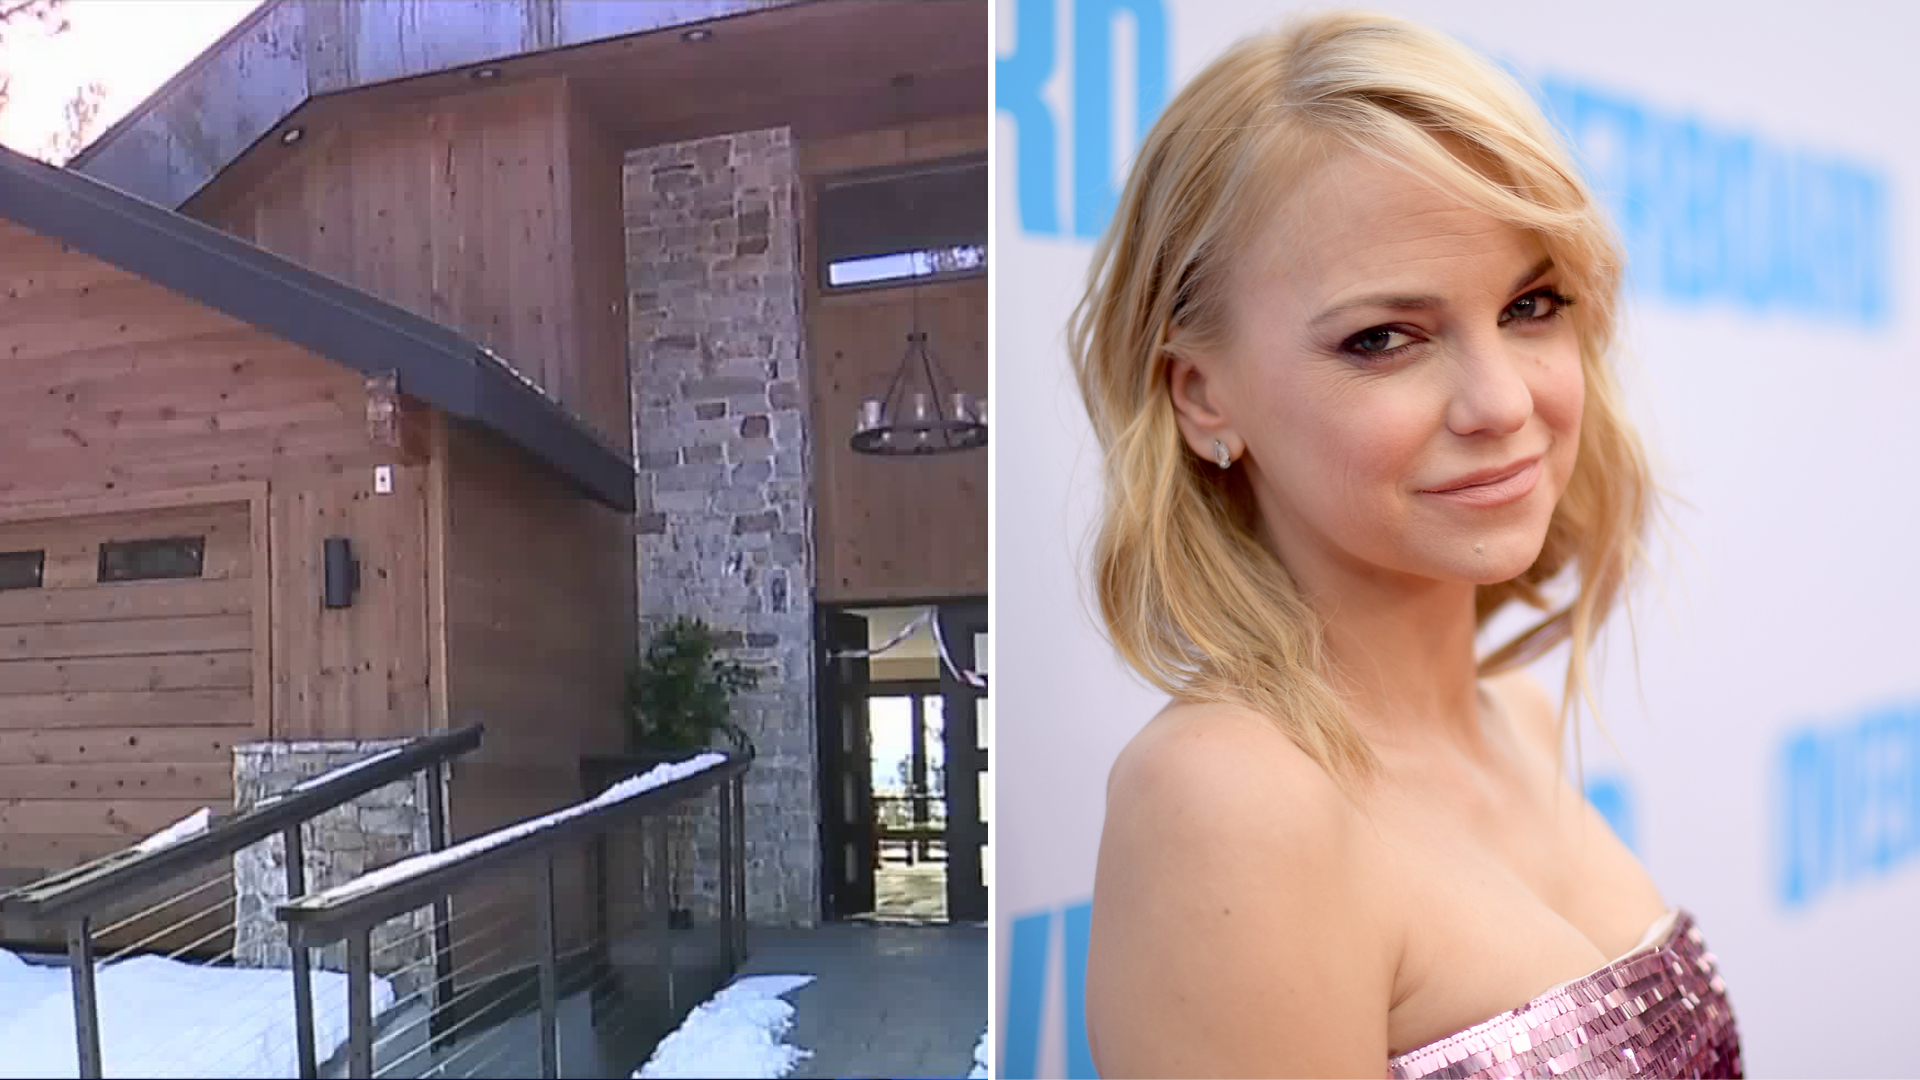 Anna Faris attends a film premiere on April 30, 2018, in Westwood, California. (Credit: Matt Winkelmeyer/Getty Images) And the Lake Tahoe cabin she stayed at. (Credit: KTXL)